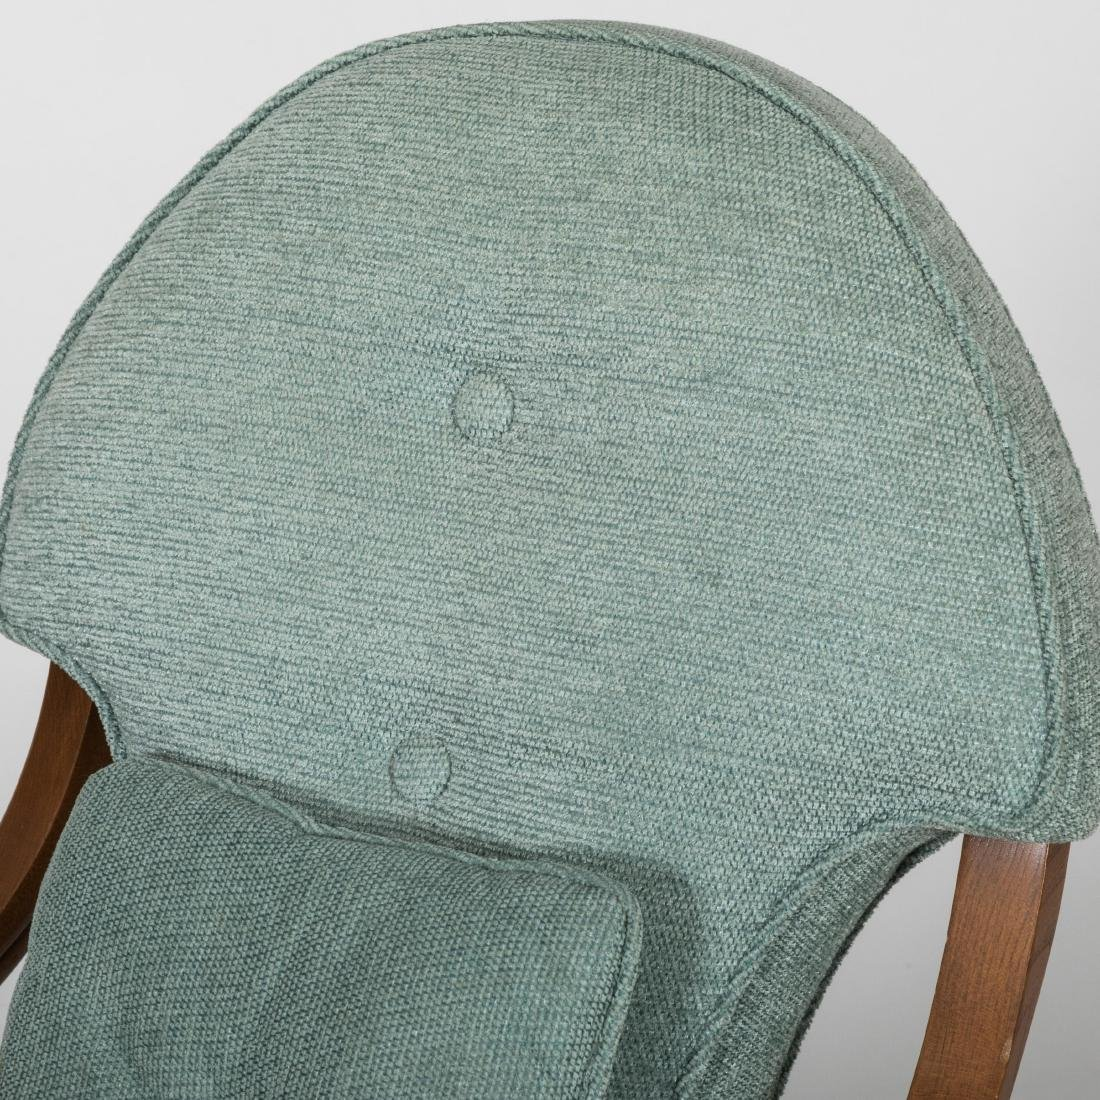 Pair Rolled Arm Chairs - 3